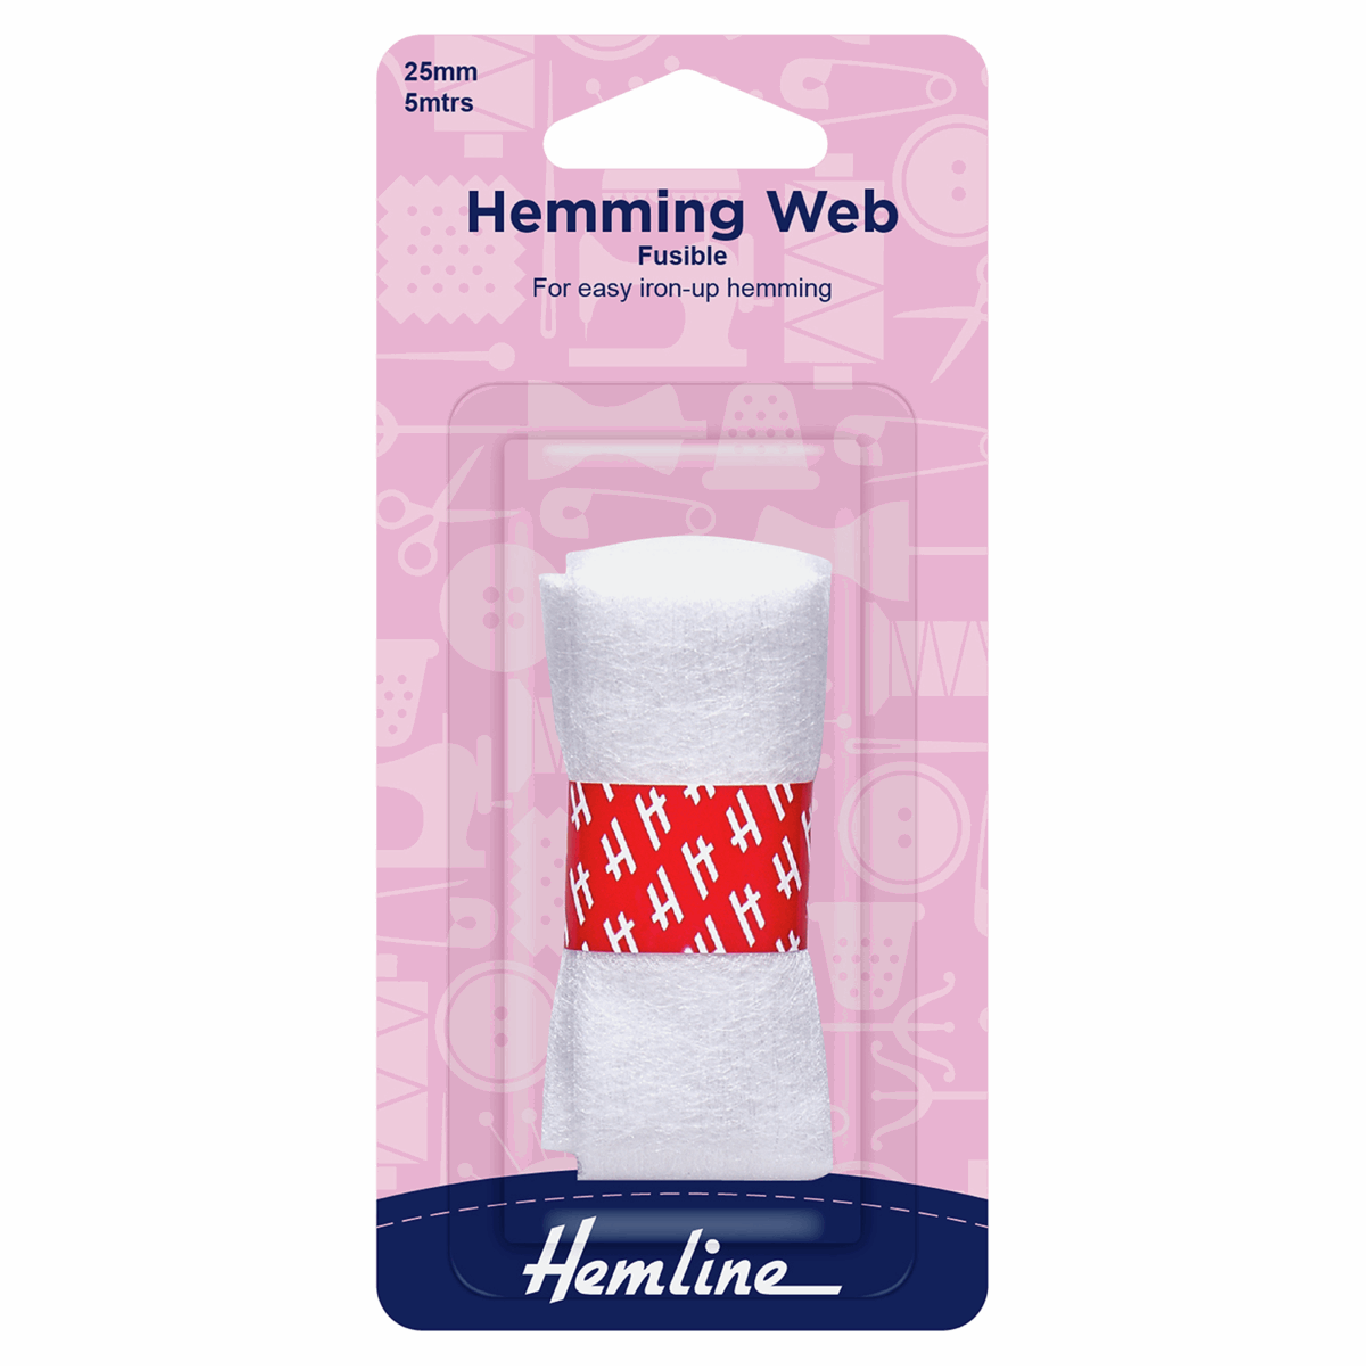 Image of Fusible Hemming Web | 5m x 25mm